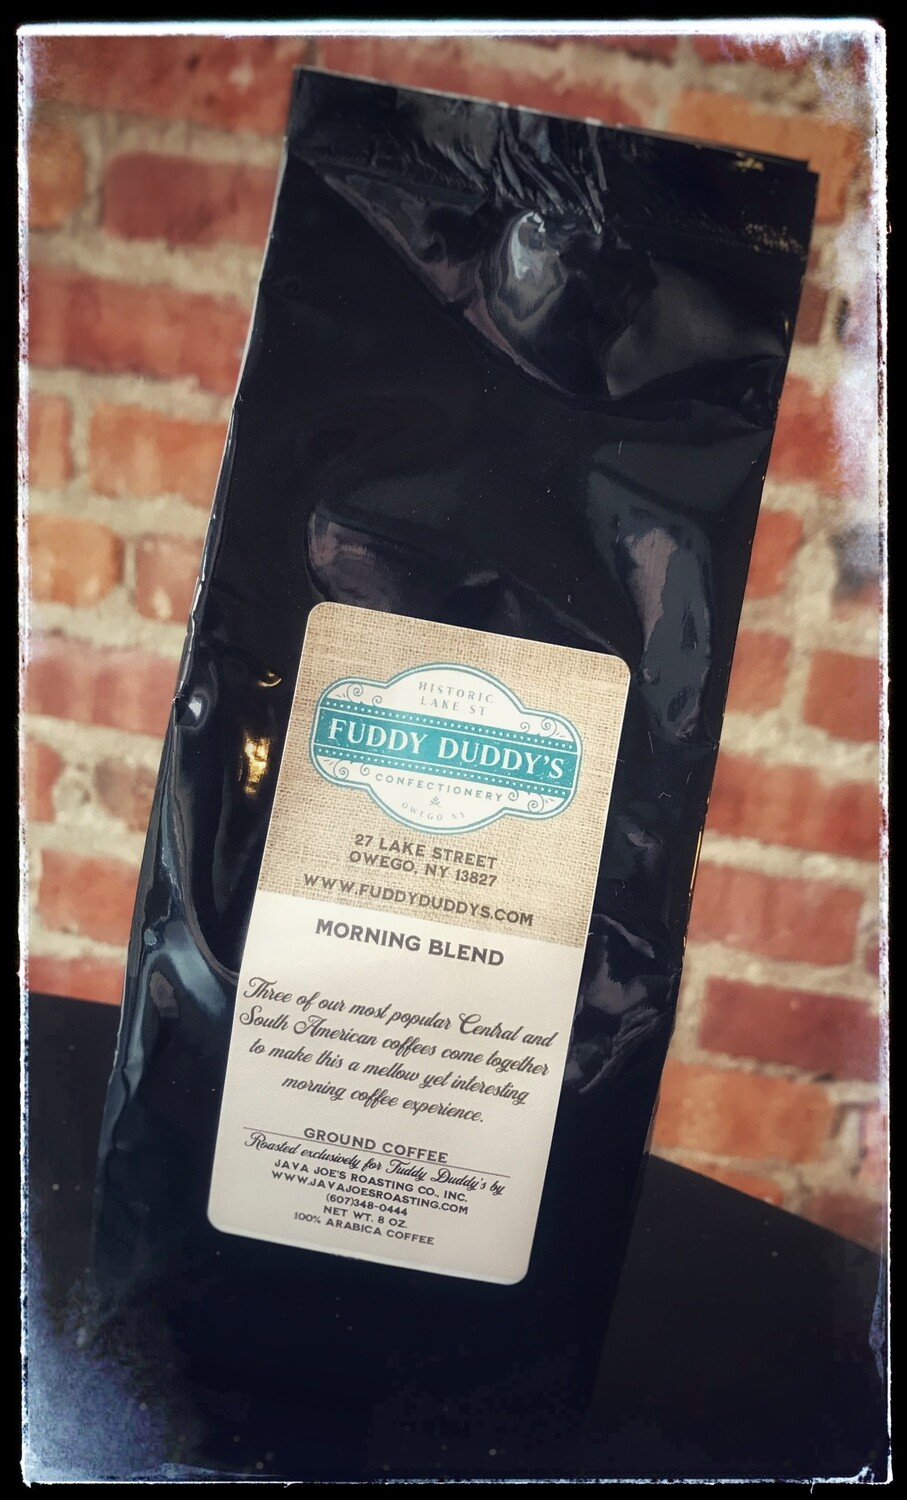 Fuddy Duddy's Morning Blend Ground Coffee